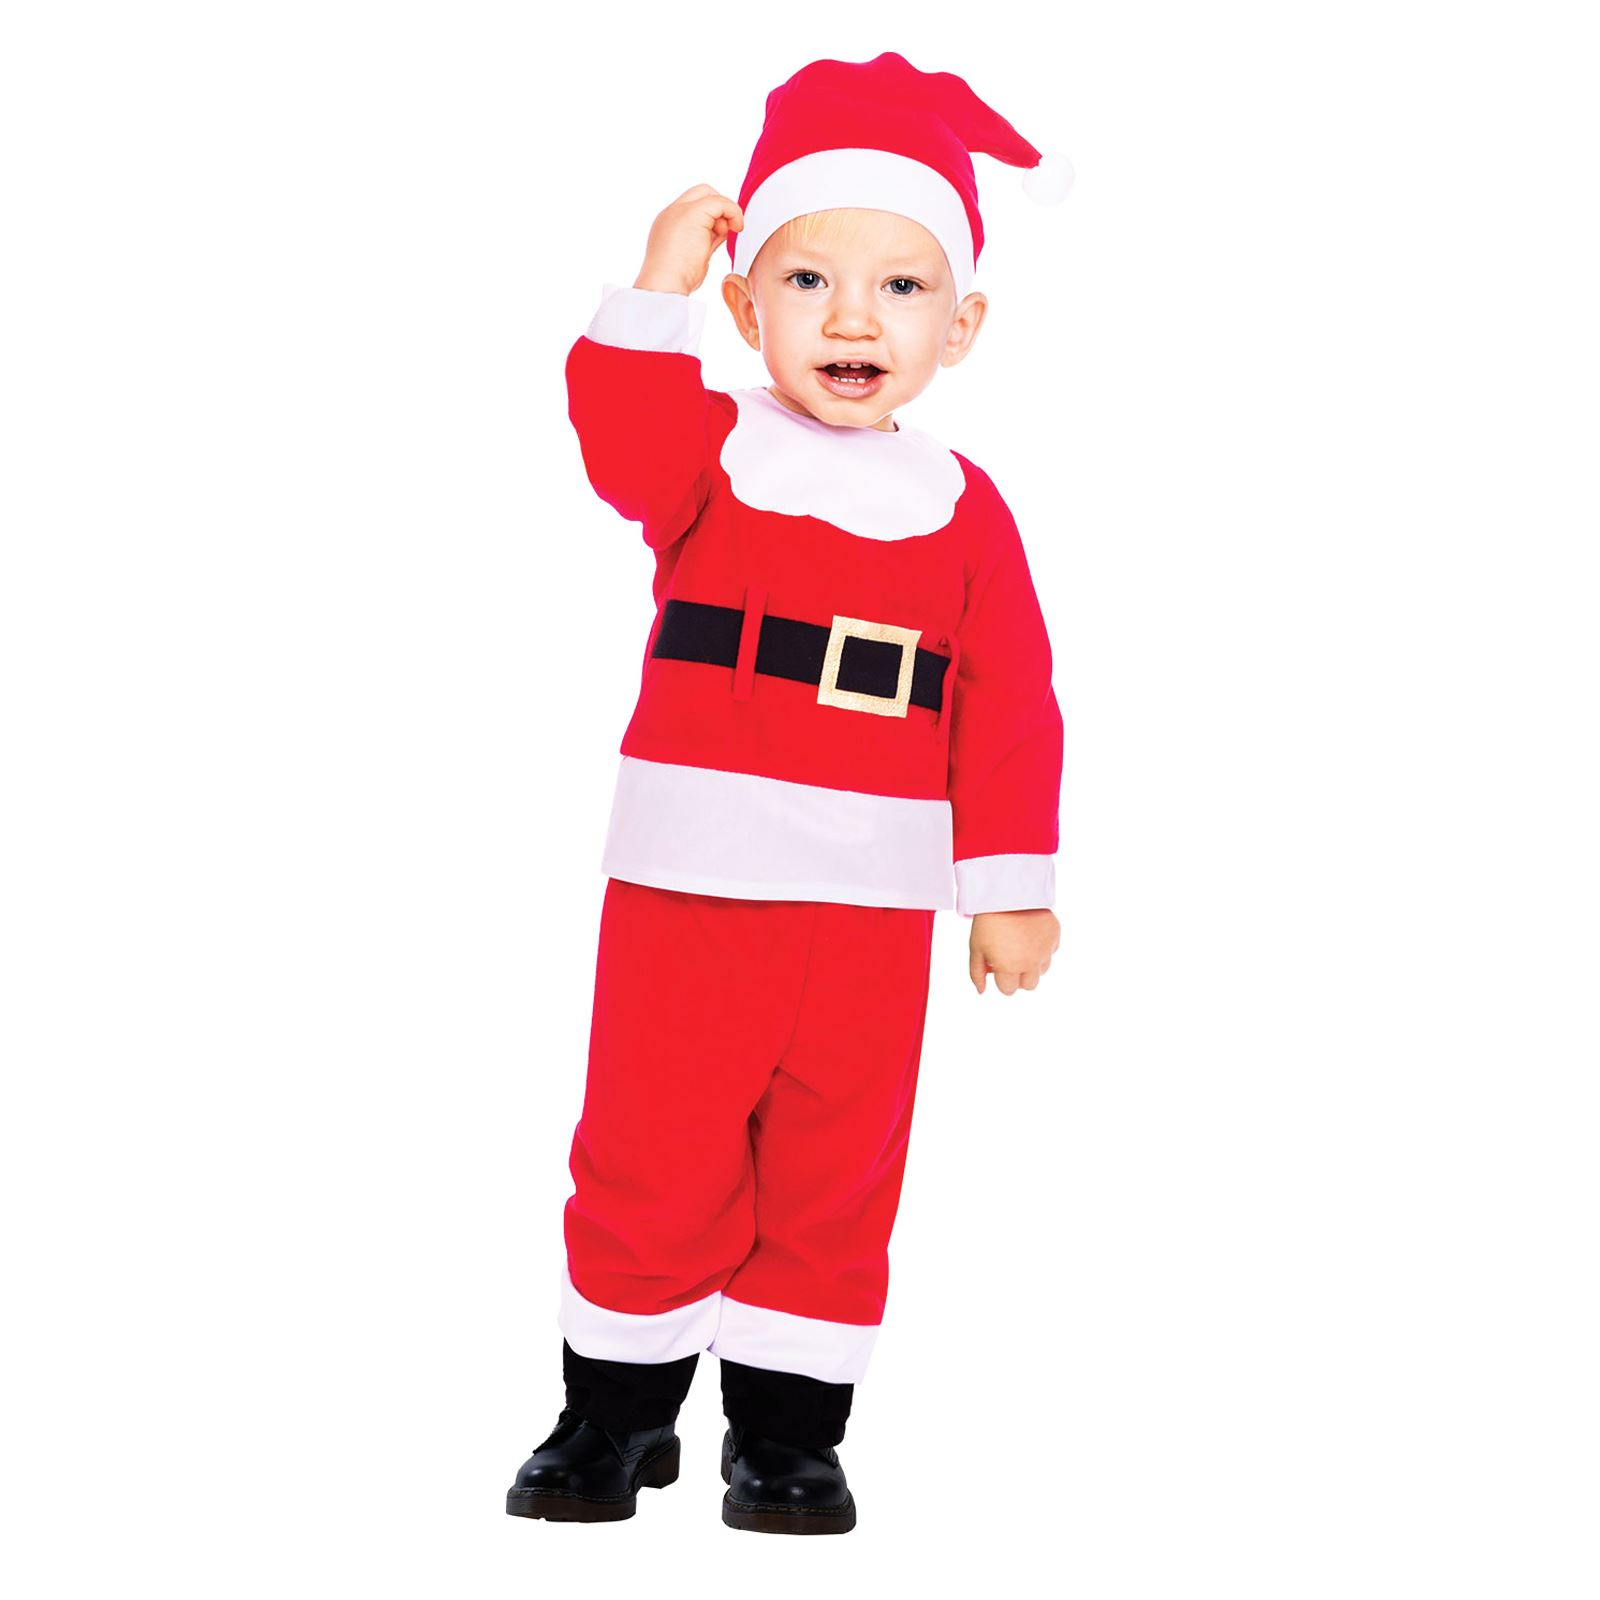 269d60725a59 Baby Toddler Santa Suit Christmas Party Fancy Dress Costume Boys ...